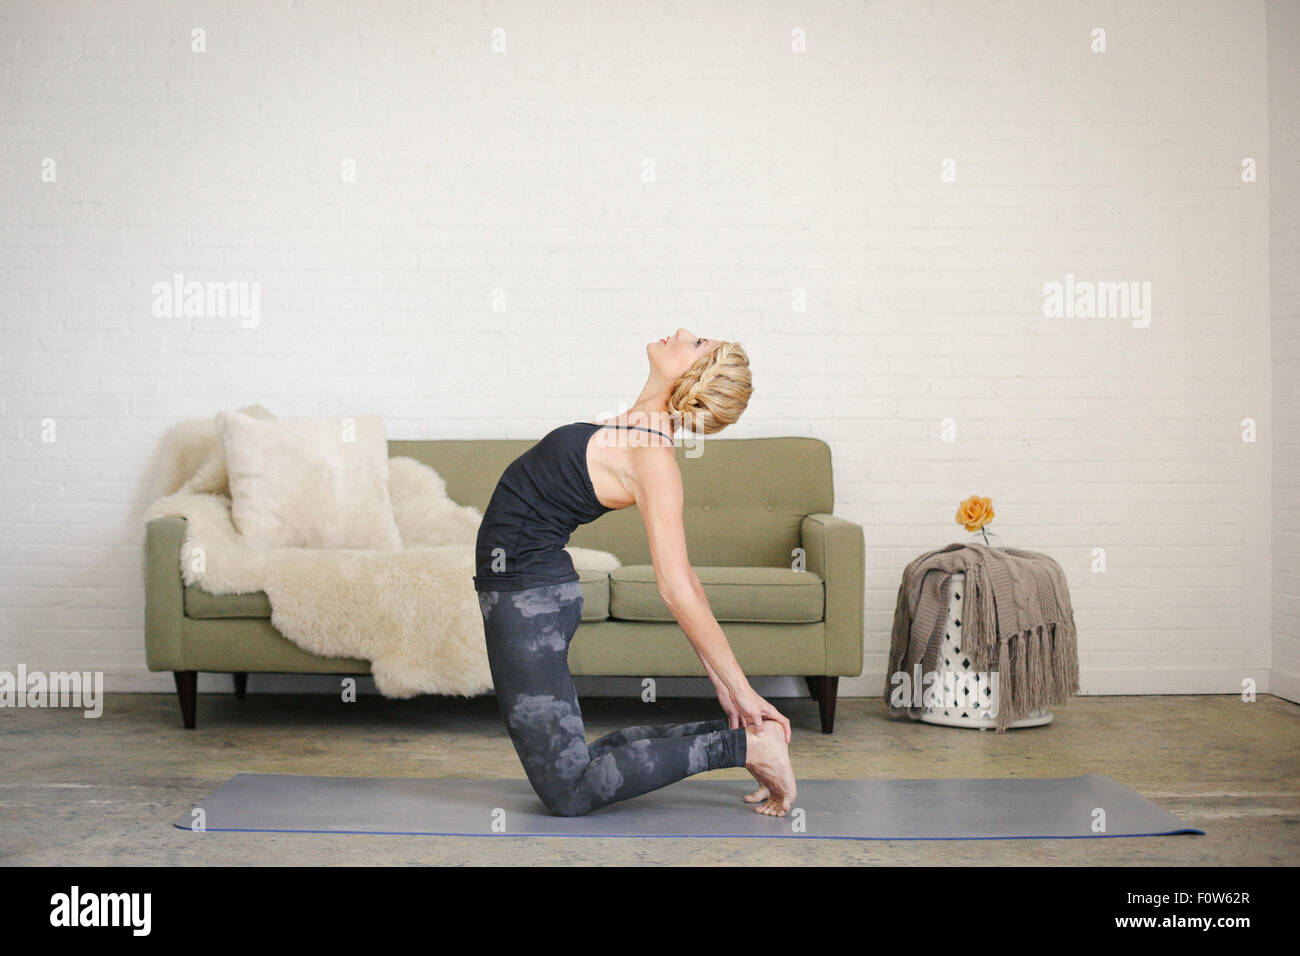 A blonde woman kneeling on a yoga mat in a room, doing yoga, bending backwards with her hands touching her heels. - Stock Image